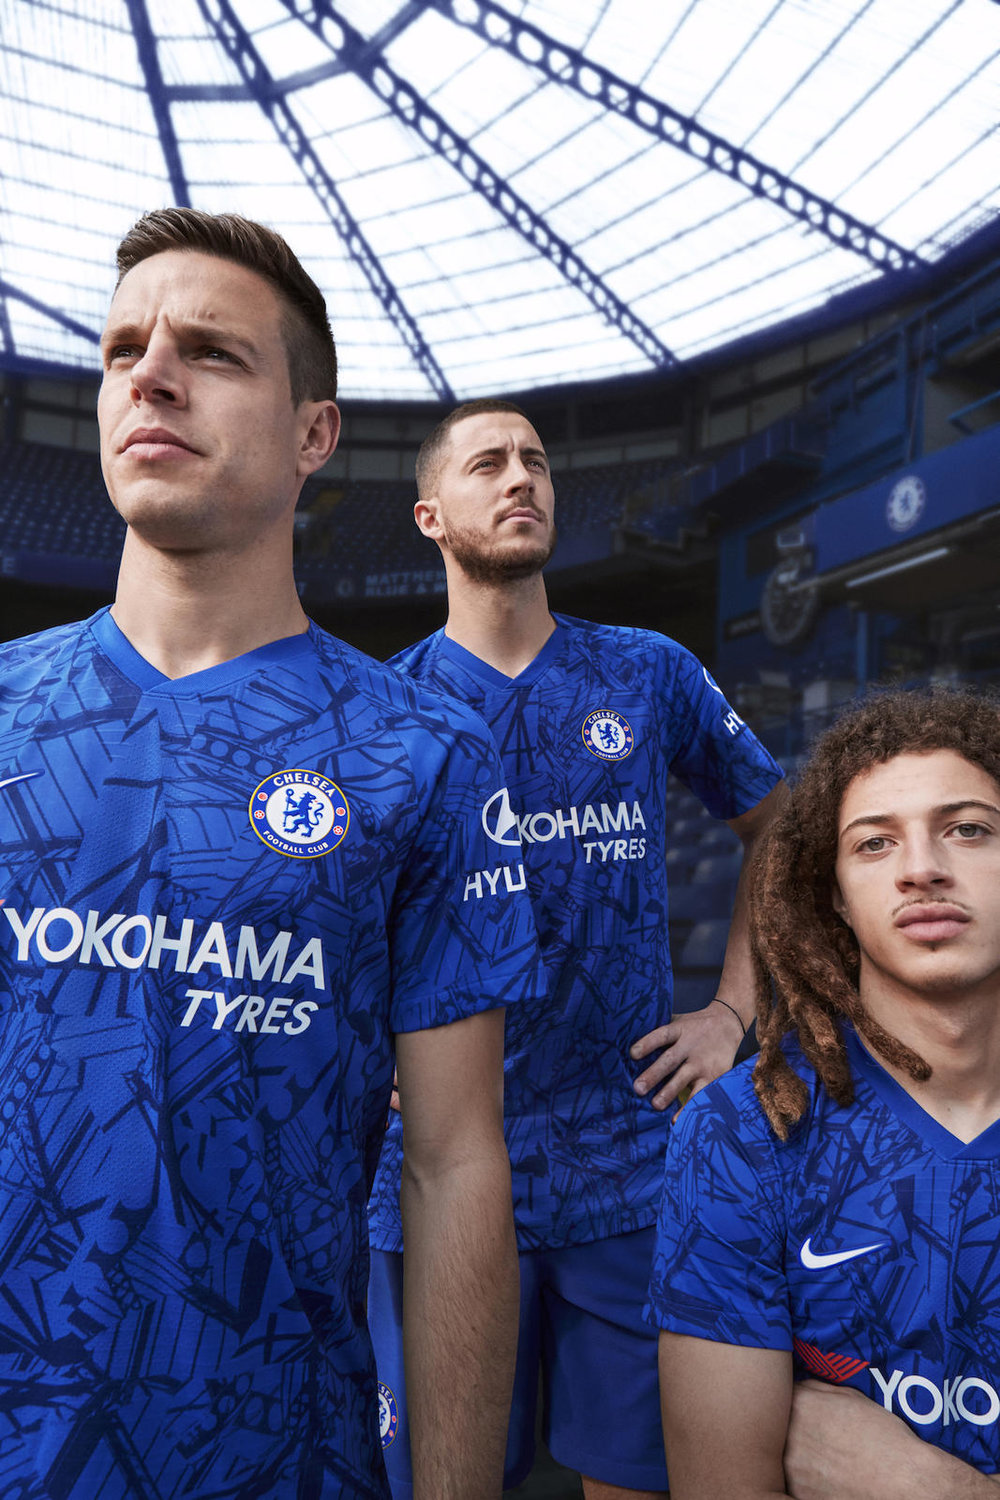 Nike_ChelseaFC_HomeKit_2019-20_7_native_1600.jpg